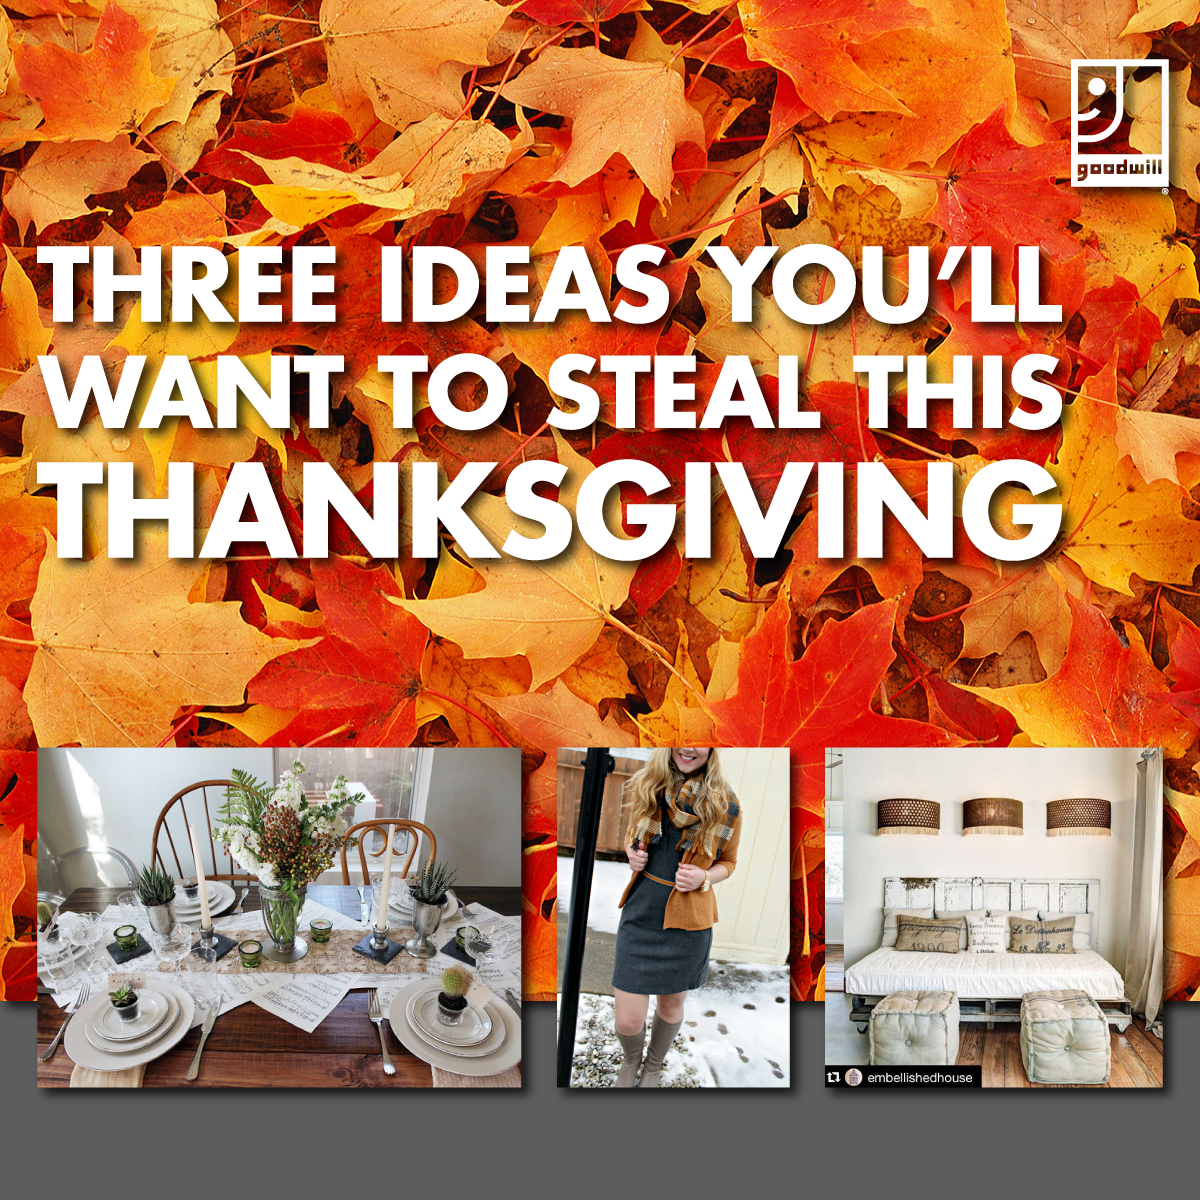 Three Ideas You'll Want to Steal this Thanksgiving